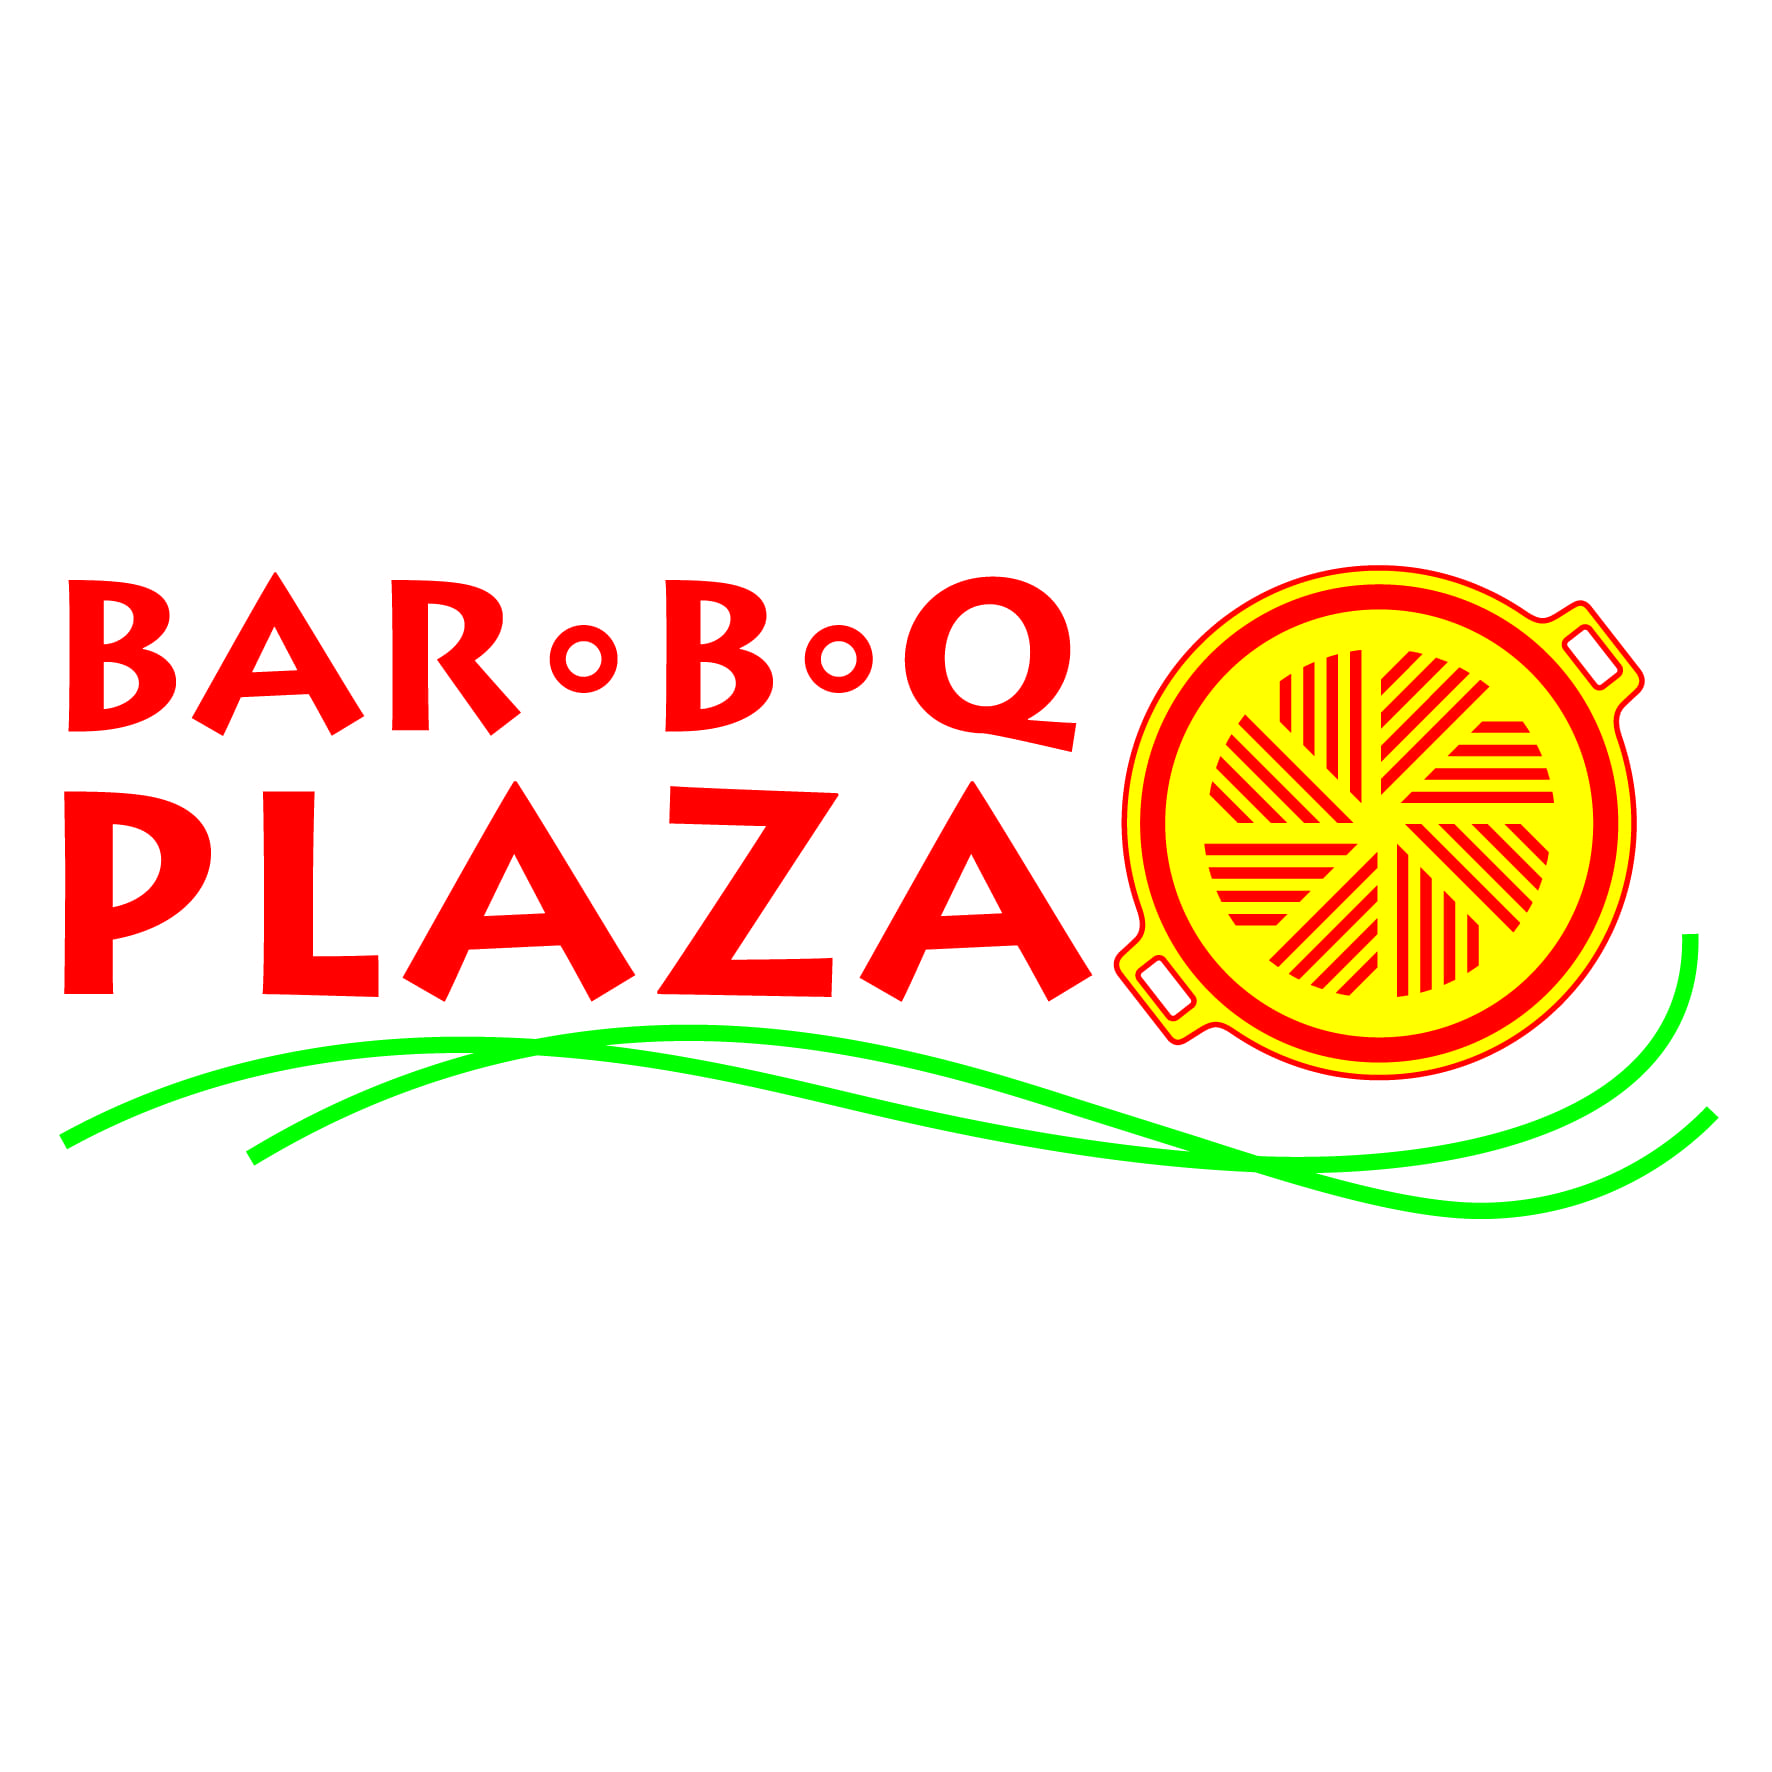 Bar B Q Plaza Coupons & Vouchers 2017